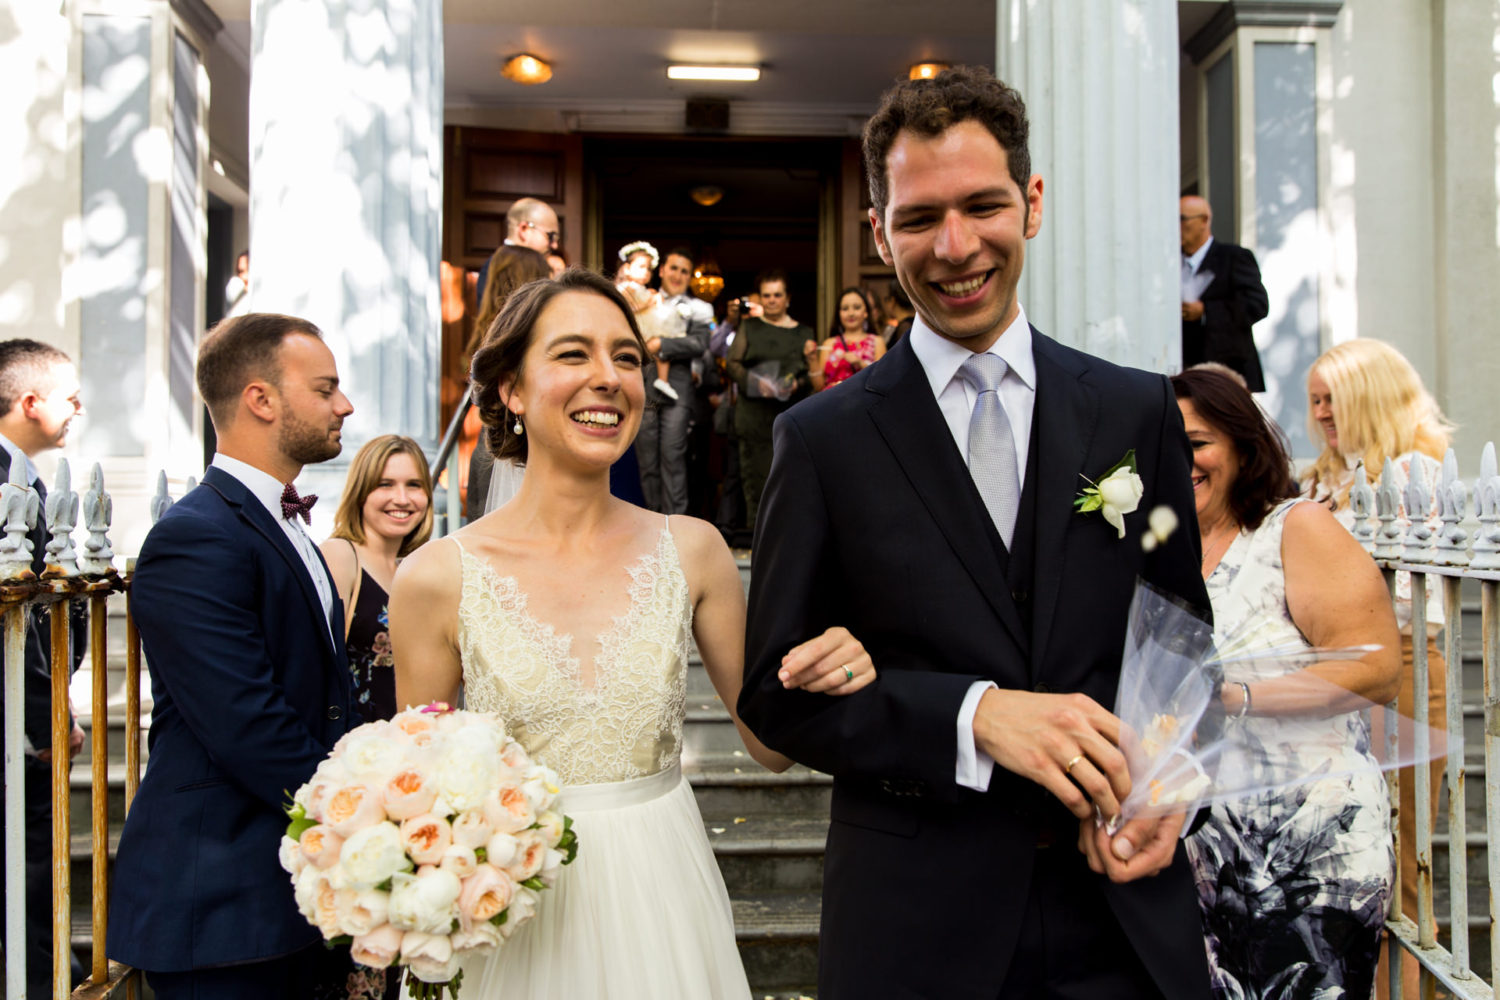 Just married couple exit the church in Sydney after their Greek wedding ceremony